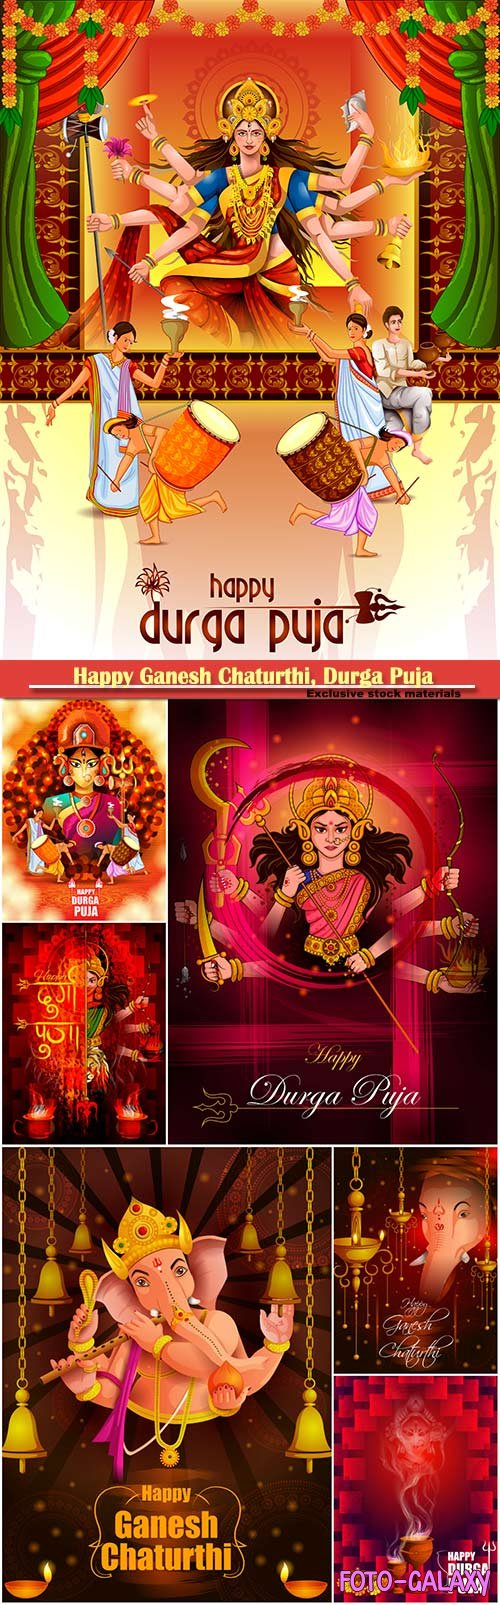 Happy Ganesh Chaturthi, Durga Puja vector illustration